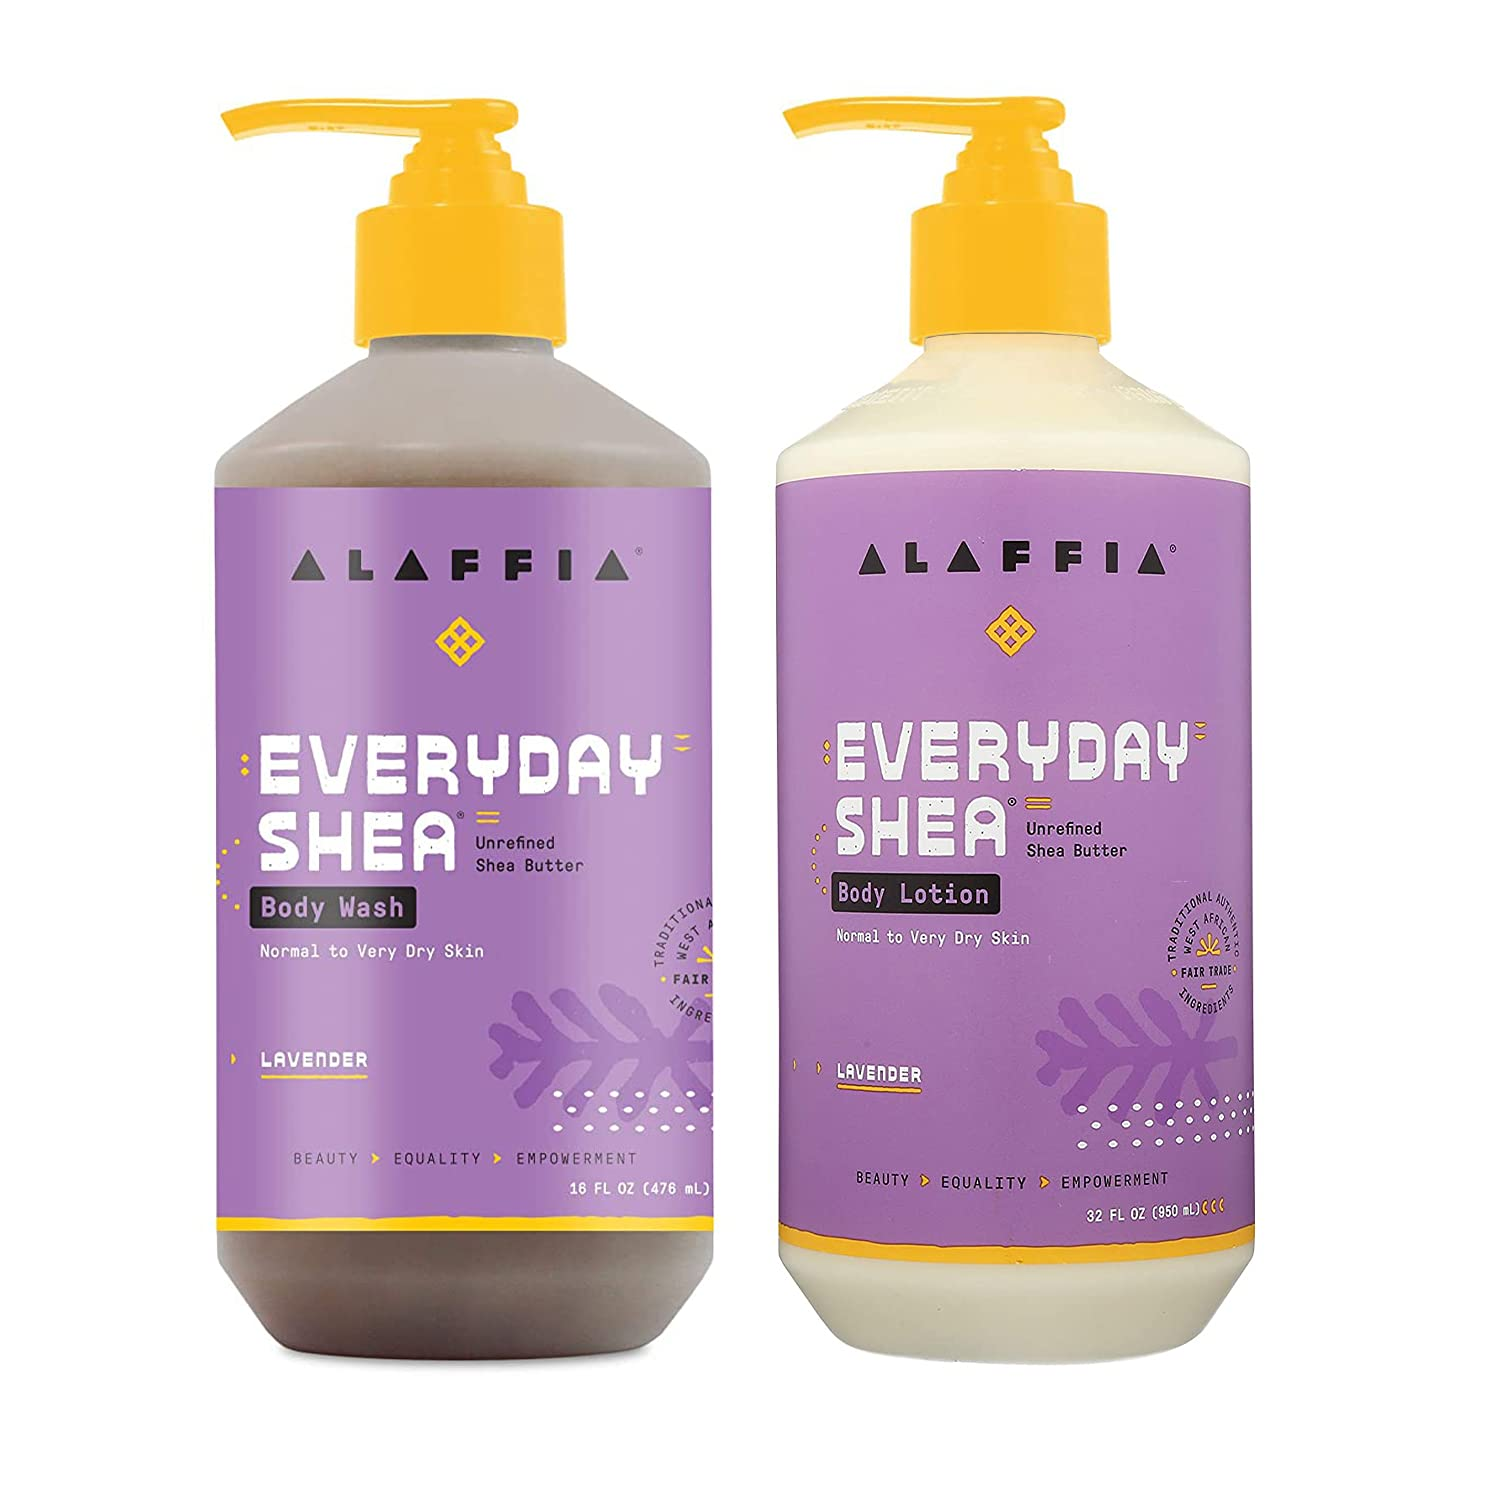 Alaffia EveryDay Shea Body Lotion 2021 and Wash Online limited product Bundle Normal -